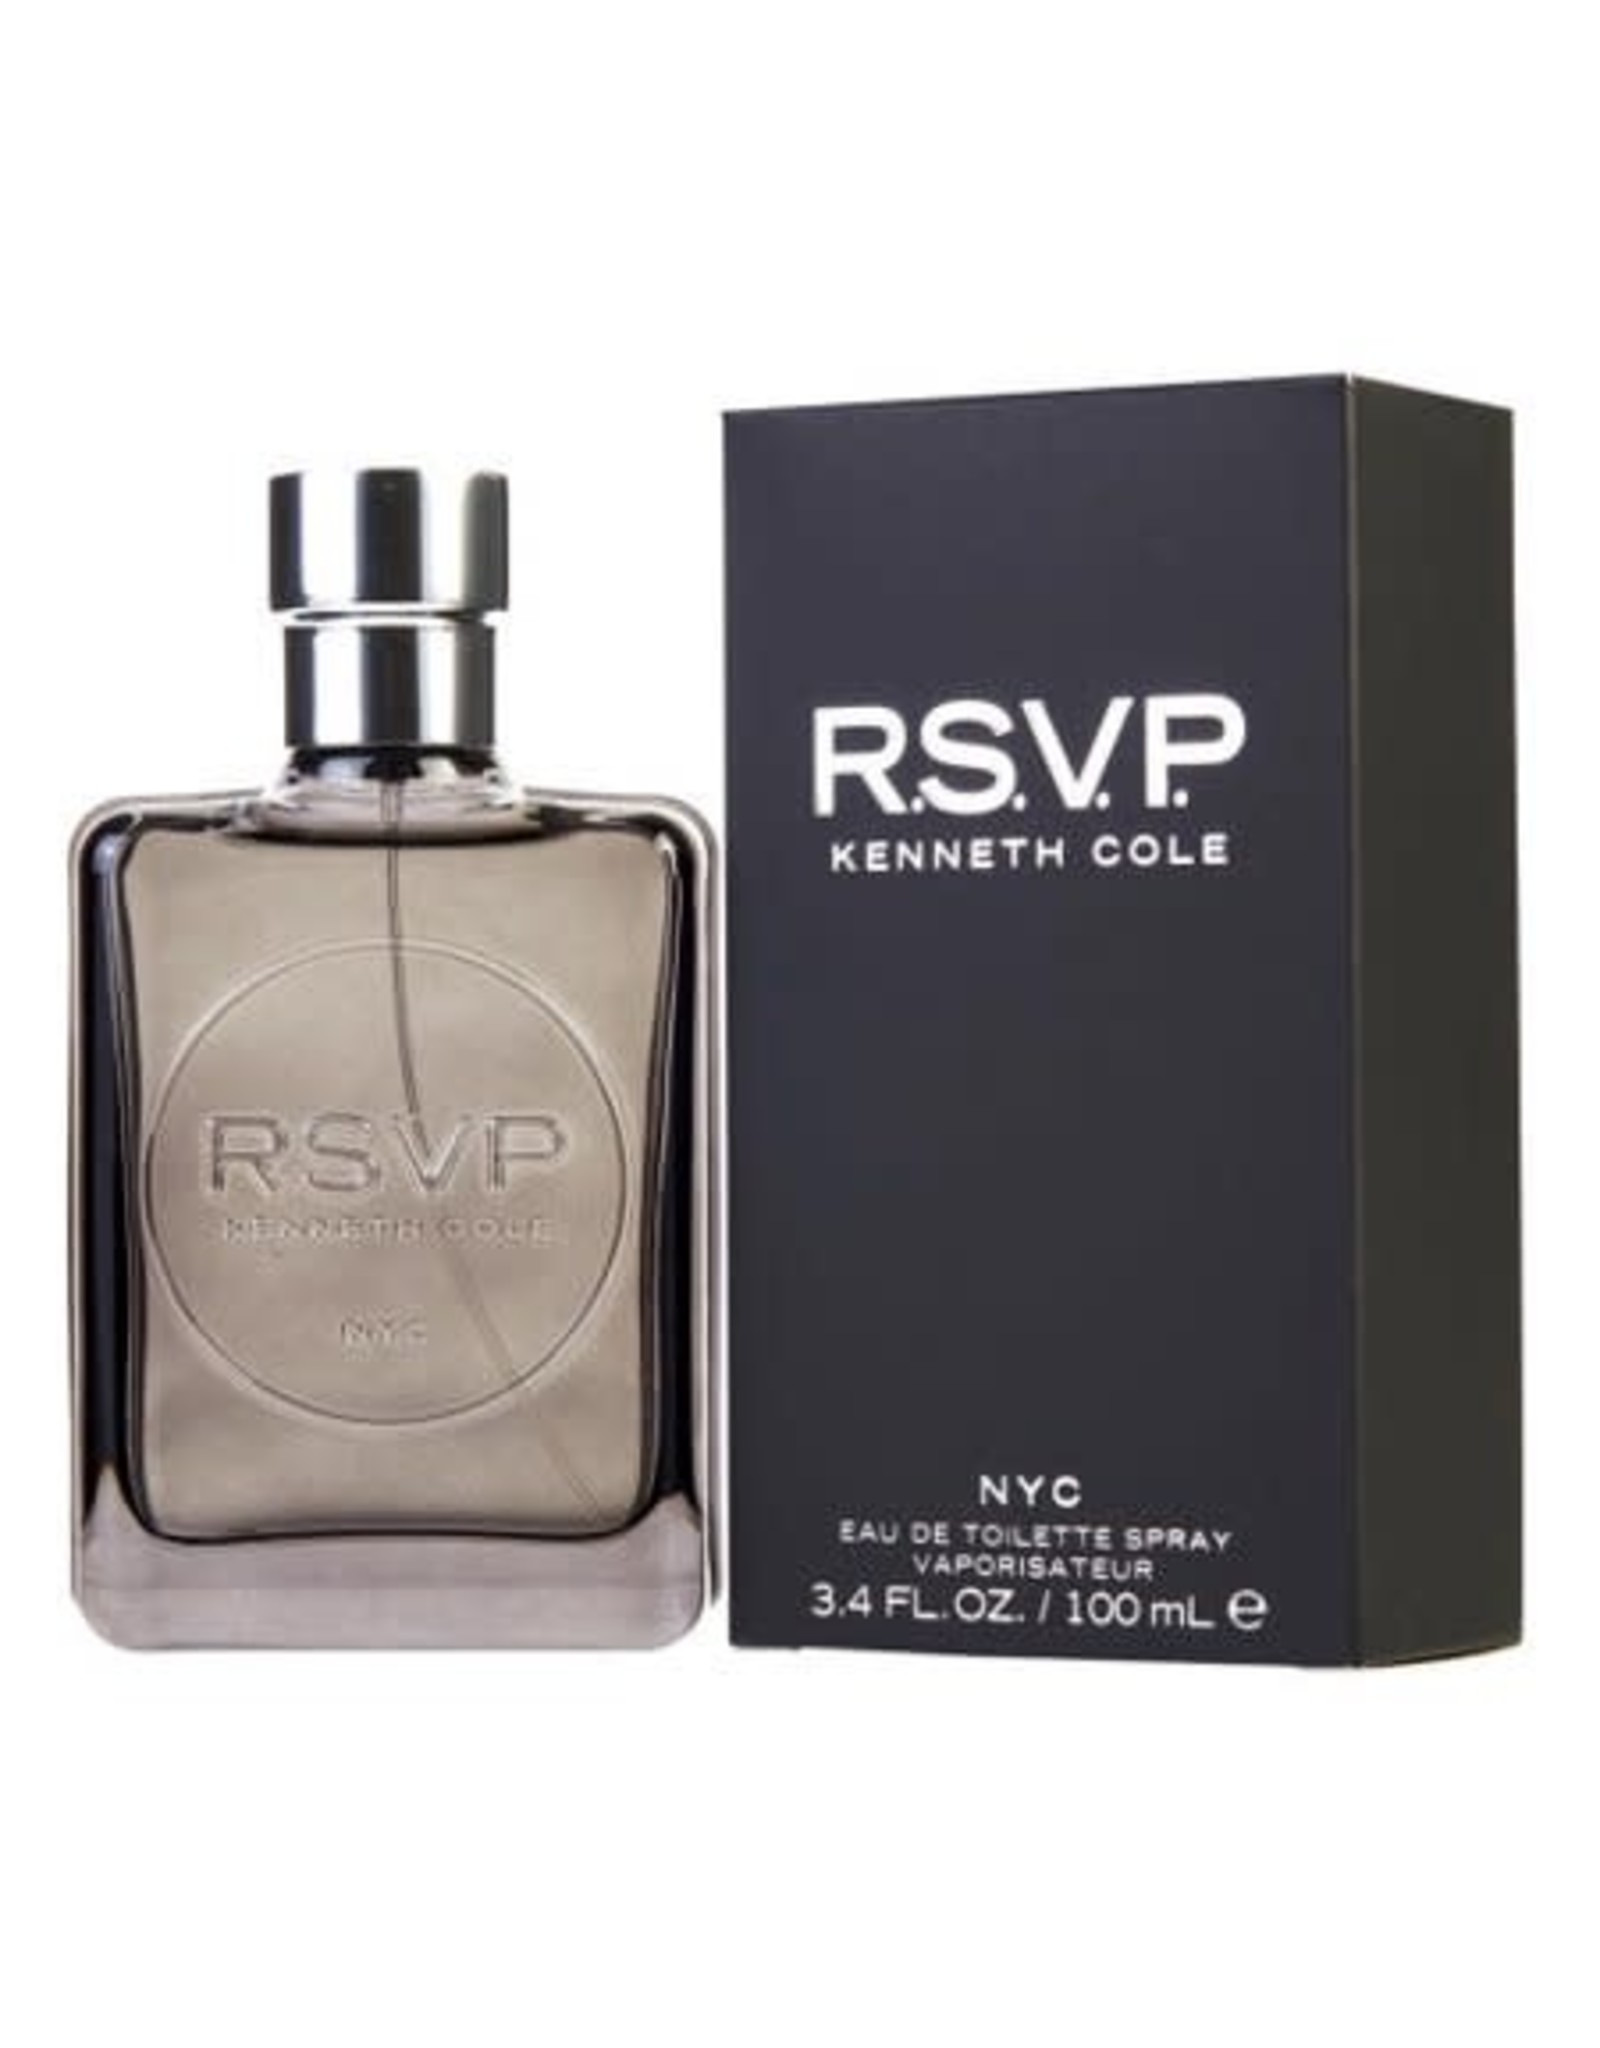 KENNETH COLE KENNETH COLE RSVP